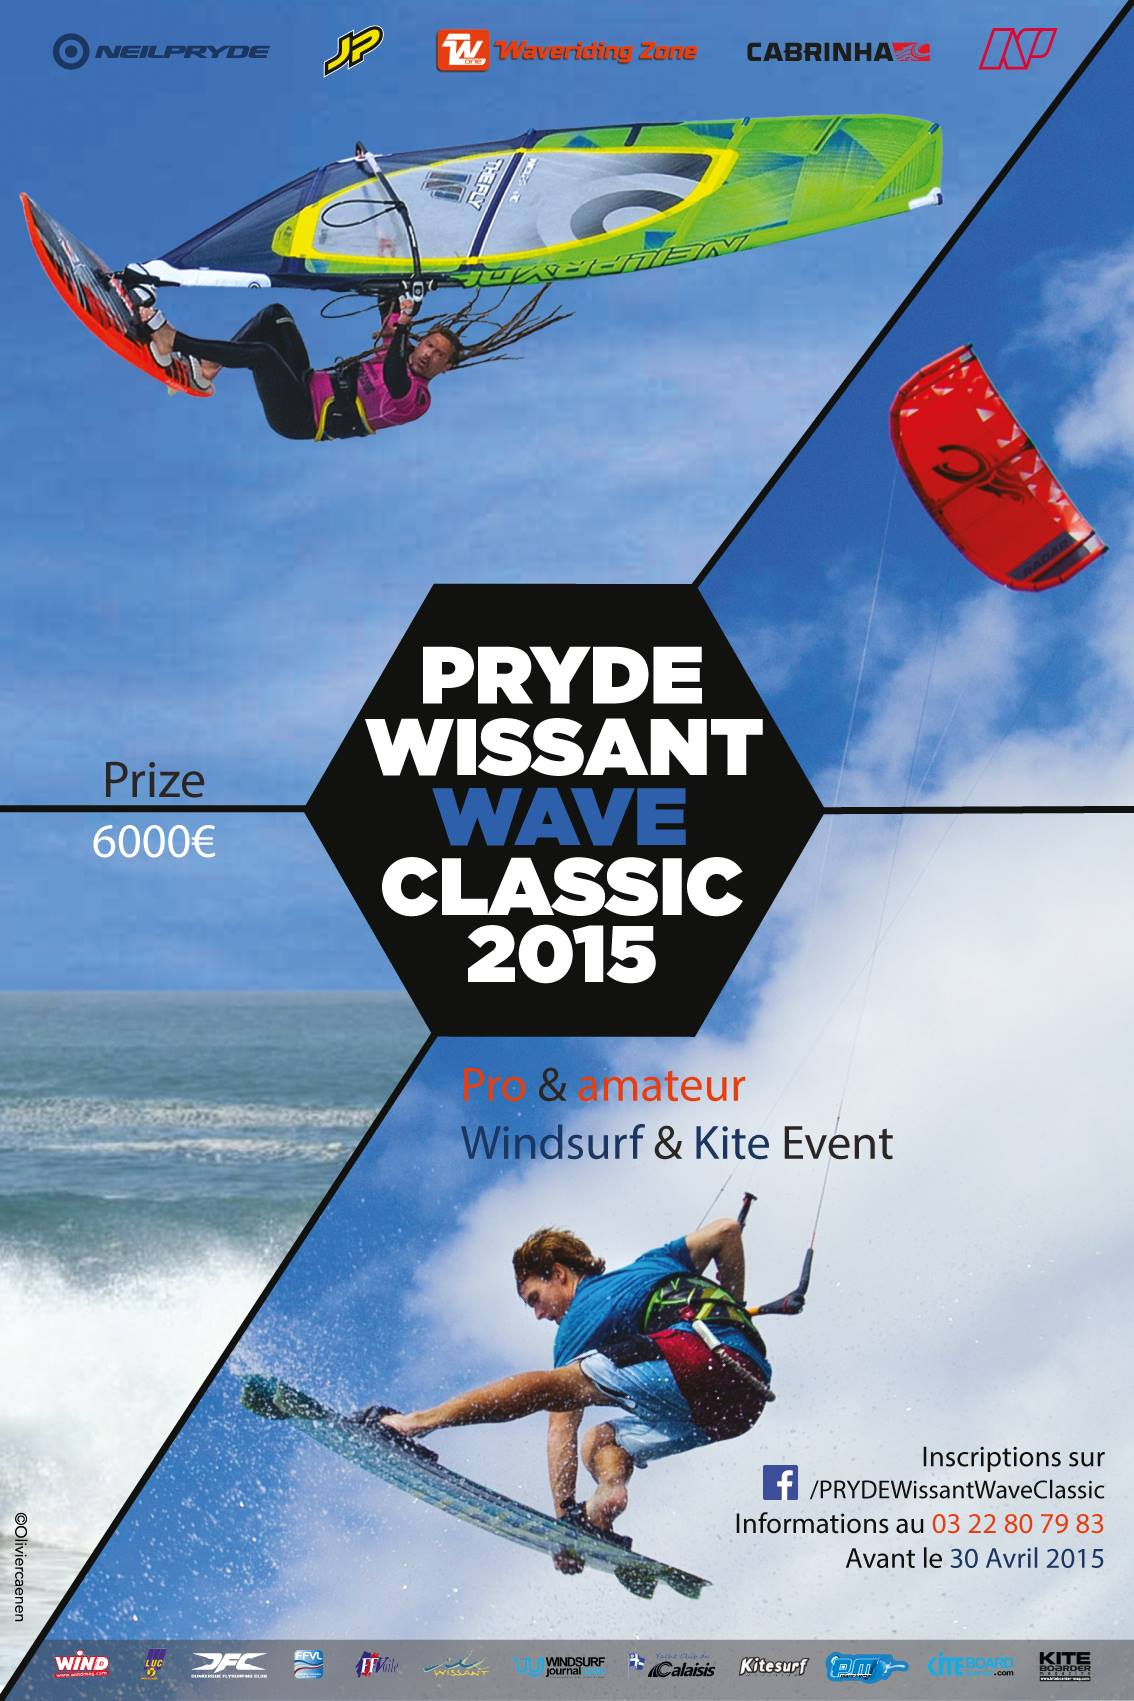 Pryde Wissant Wave Classic 2015